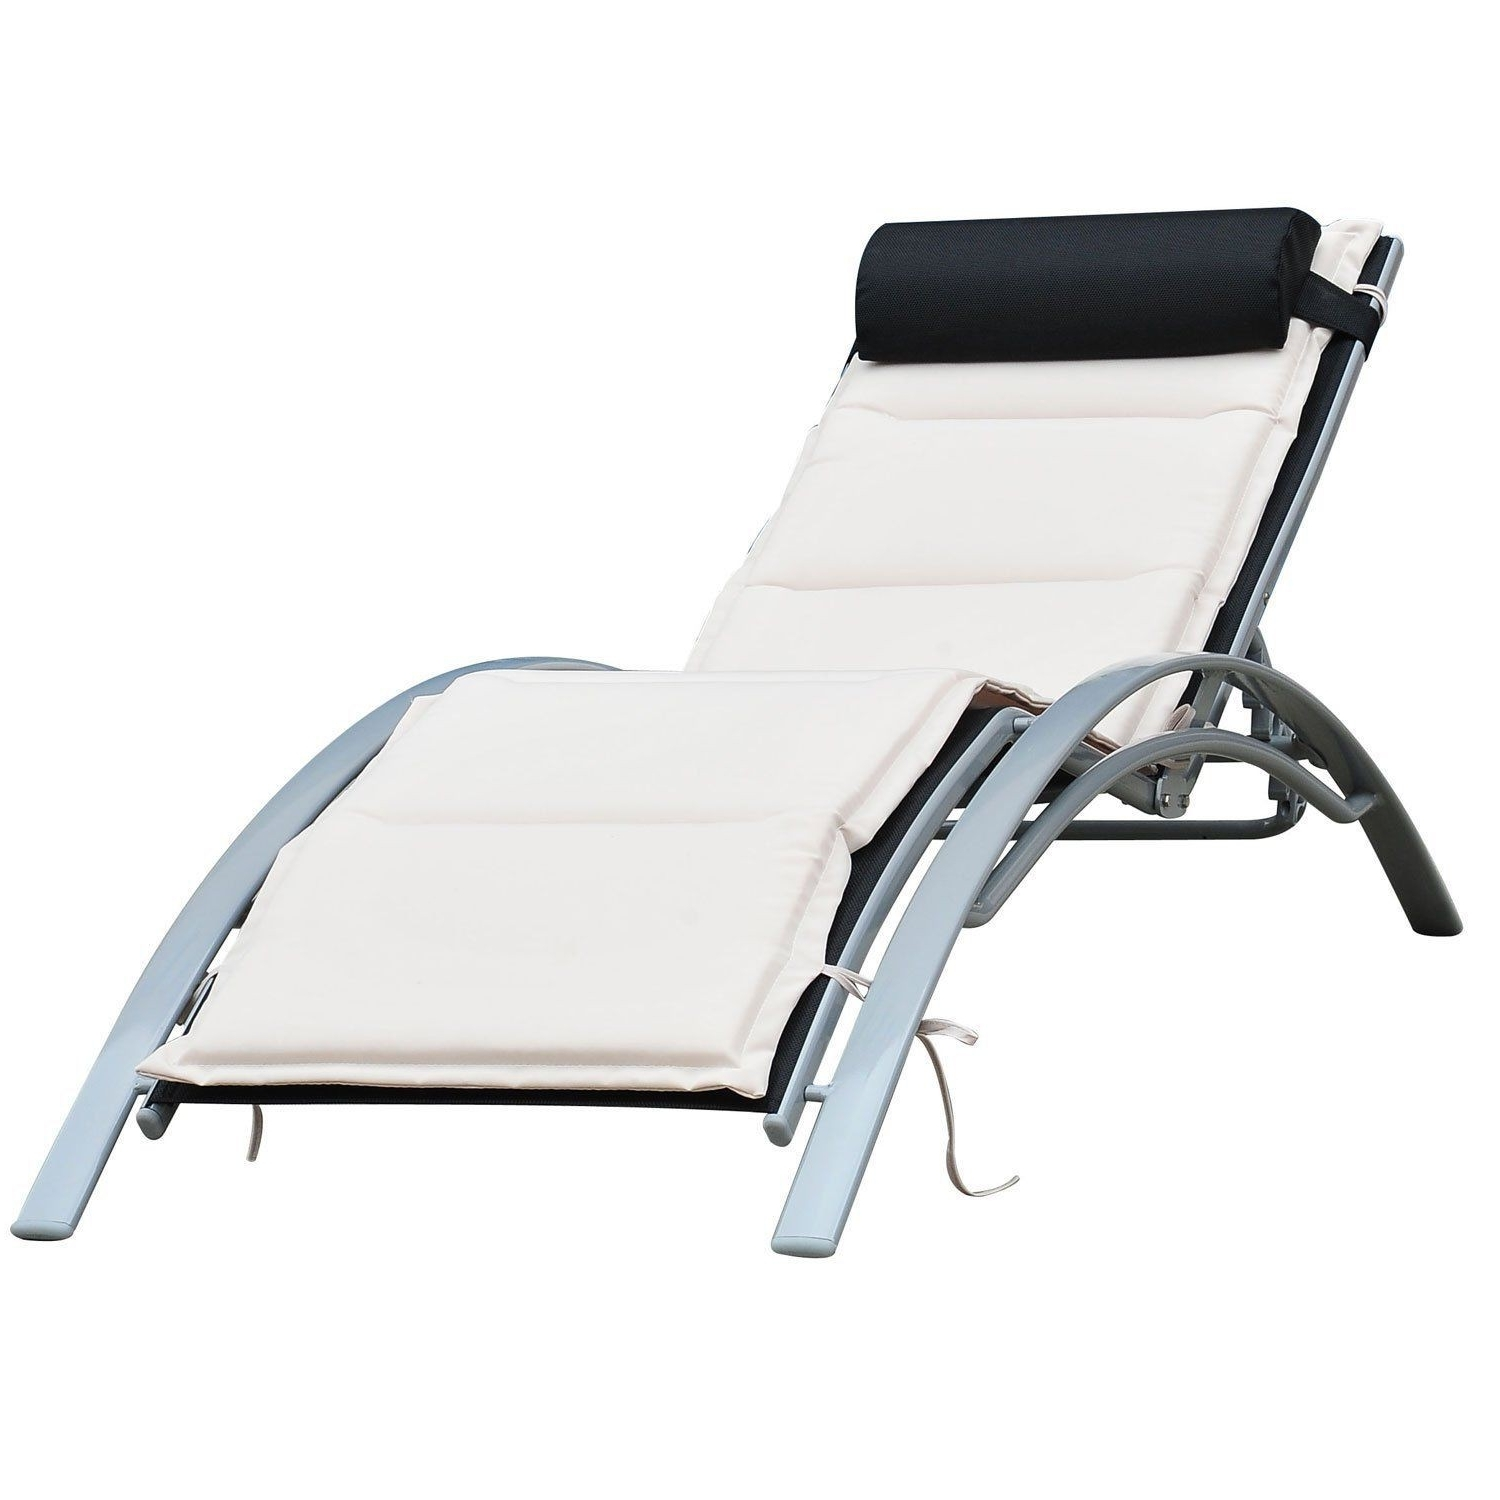 Chaise Lounge Reclining Chairs For Outdoor For Well Known Outsunny Patio Reclining Chaise Lounge Chair With Cushion – Black (View 3 of 15)